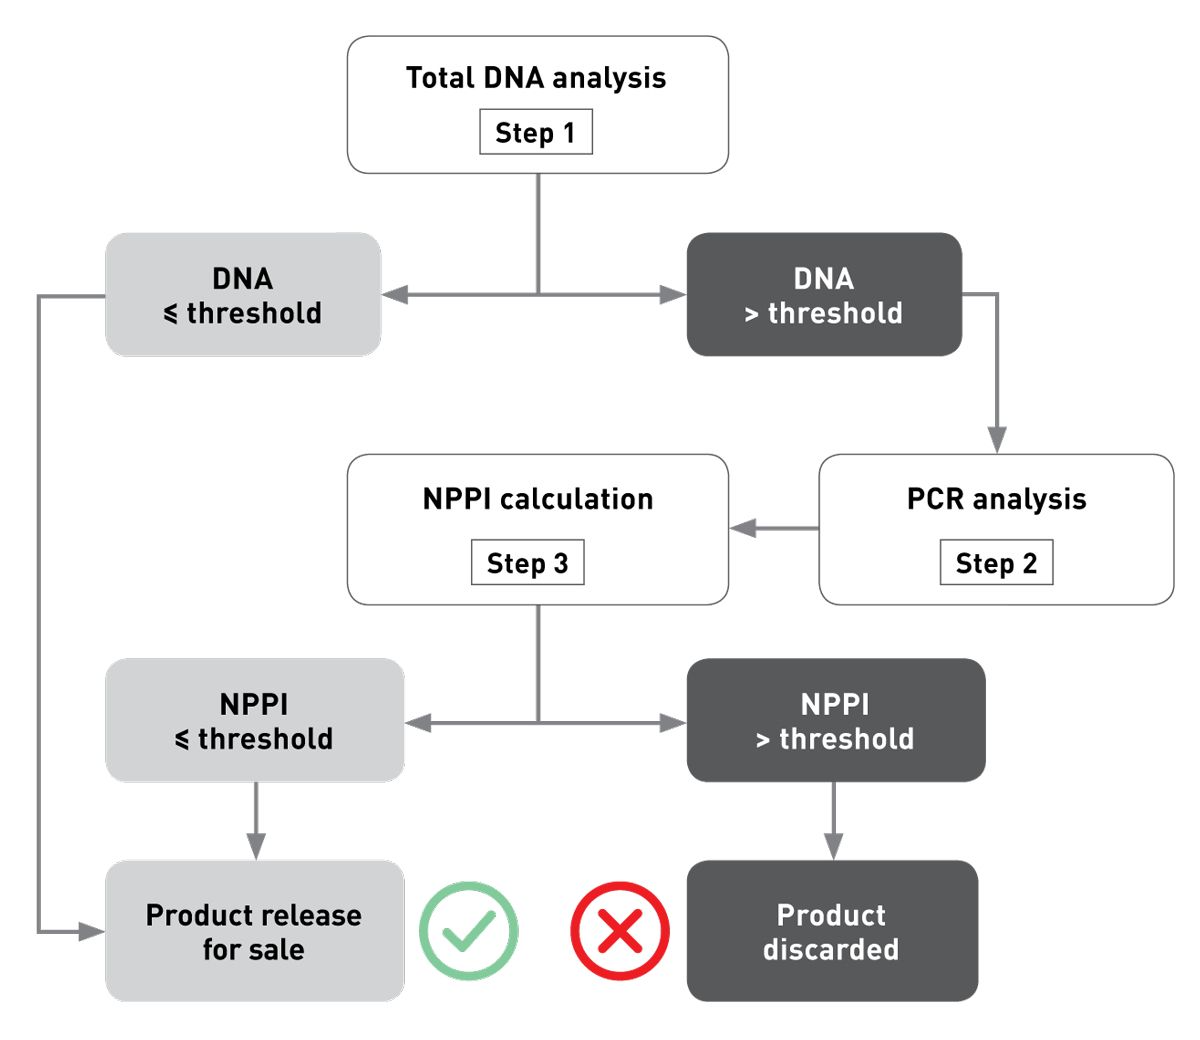 """Figure 2. Each production batch is tested to determine if there has been unwanted protein cross-contamination using a specific 3-step DNA-based analysis.  • Step 1: The total DNA content is measured and compared to a threshold established during a multicentre pre-clinical trial on dogs suffering from complex or refractory AFR ( 5 ).  • Step 2: If DNA levels exceed the threshold, PCR analysis is conducted to identify the type of protein contamination.  • Step 3: The concentration of the unwanted proteins is calculated from the total DNA measurement using the appropriate calibration curve. This is known as the """"no protein pollution index"""" or NPPI. If the NPPI is at or below the acceptable threshold, the batch is released for sale; if the NPPI is above the acceptable limit the batch is discarded."""